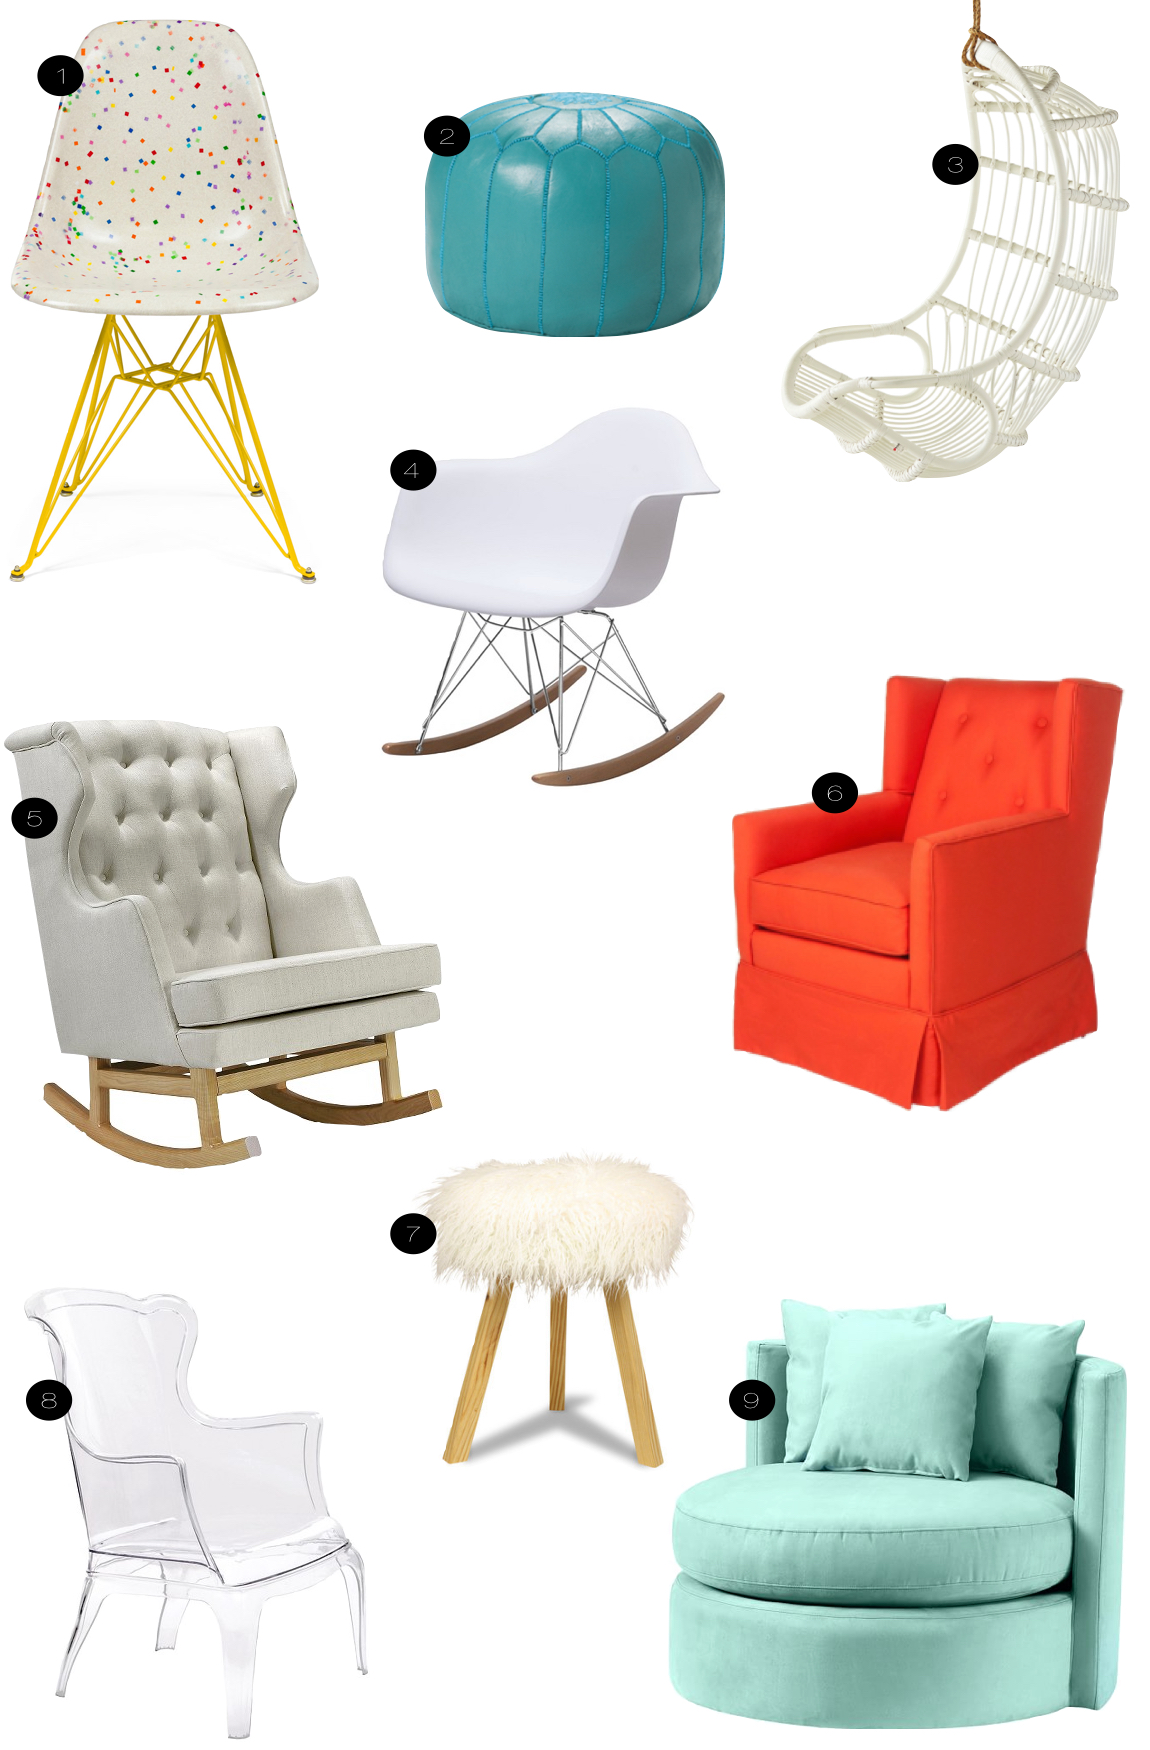 chairs for kids' rooms  |  kiki's list